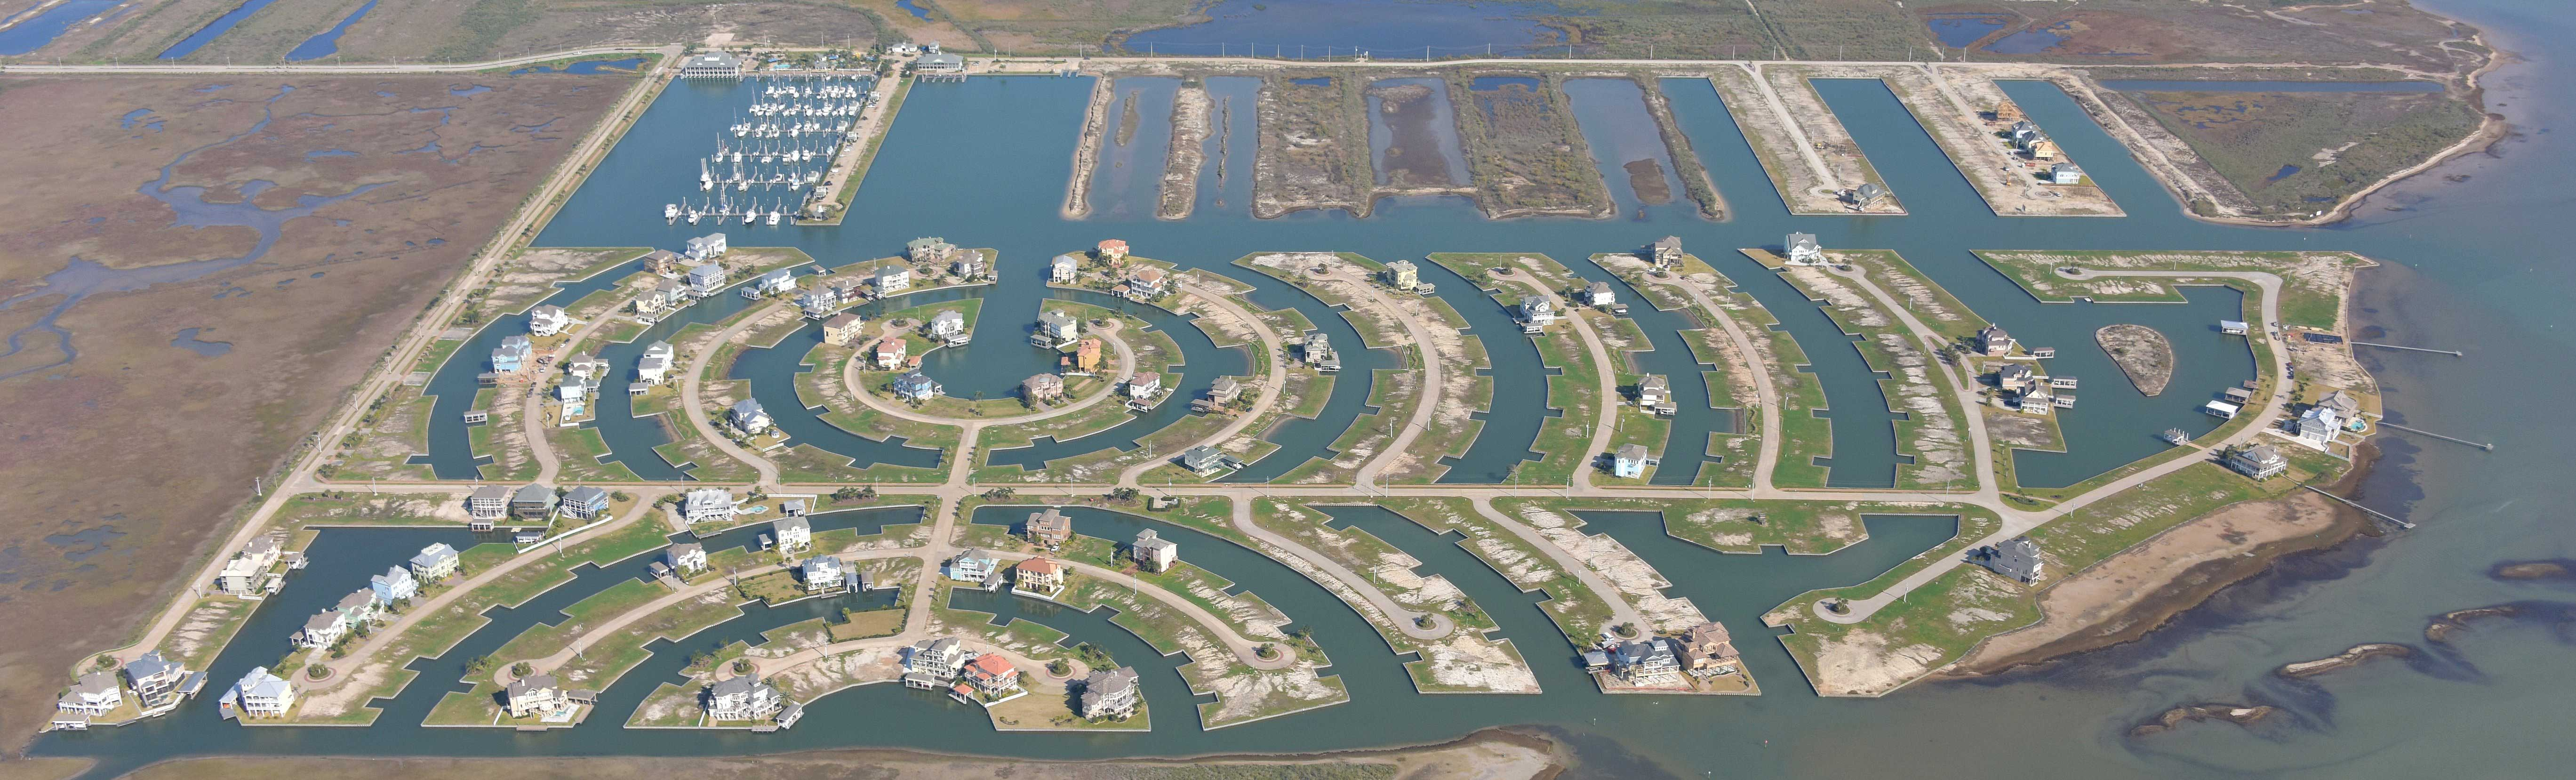 Masterplanned Waterfront Community Galveston, Texas